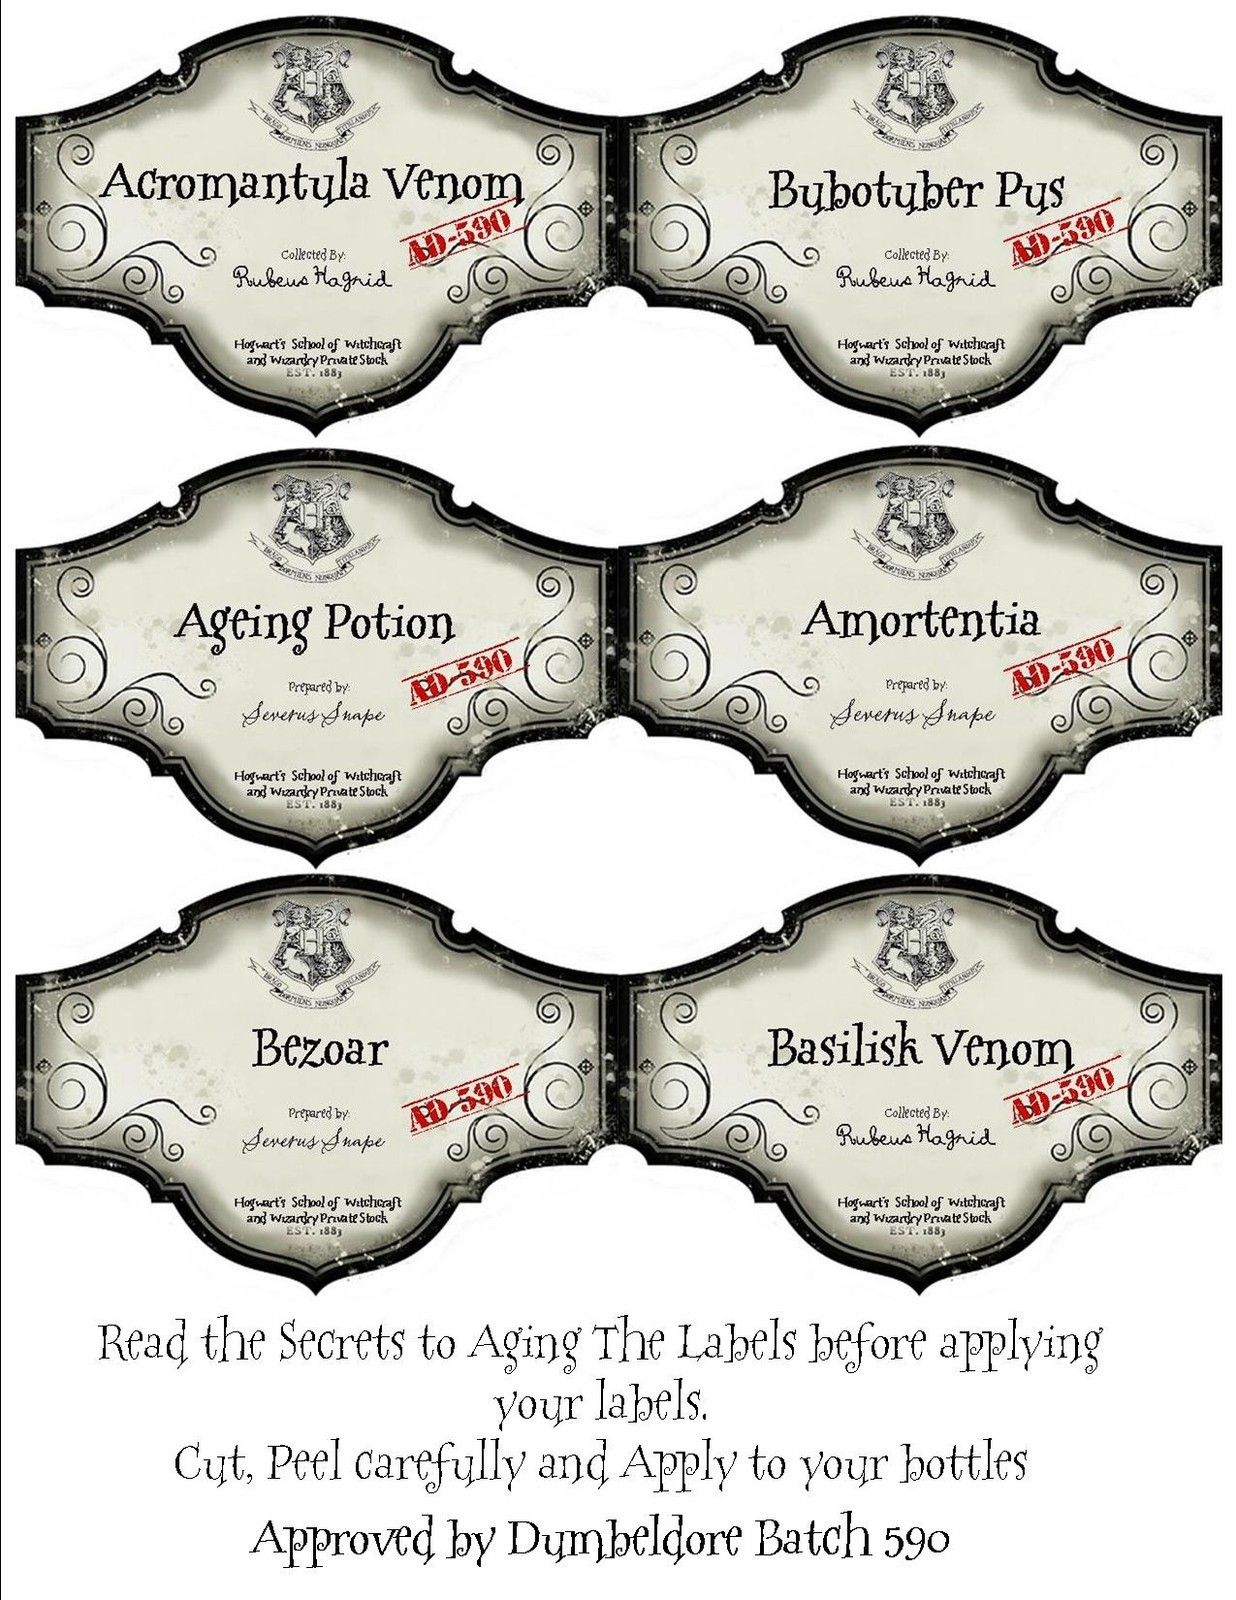 harry potter labels | AzkAbaN | Pinterest | Harry potter ...